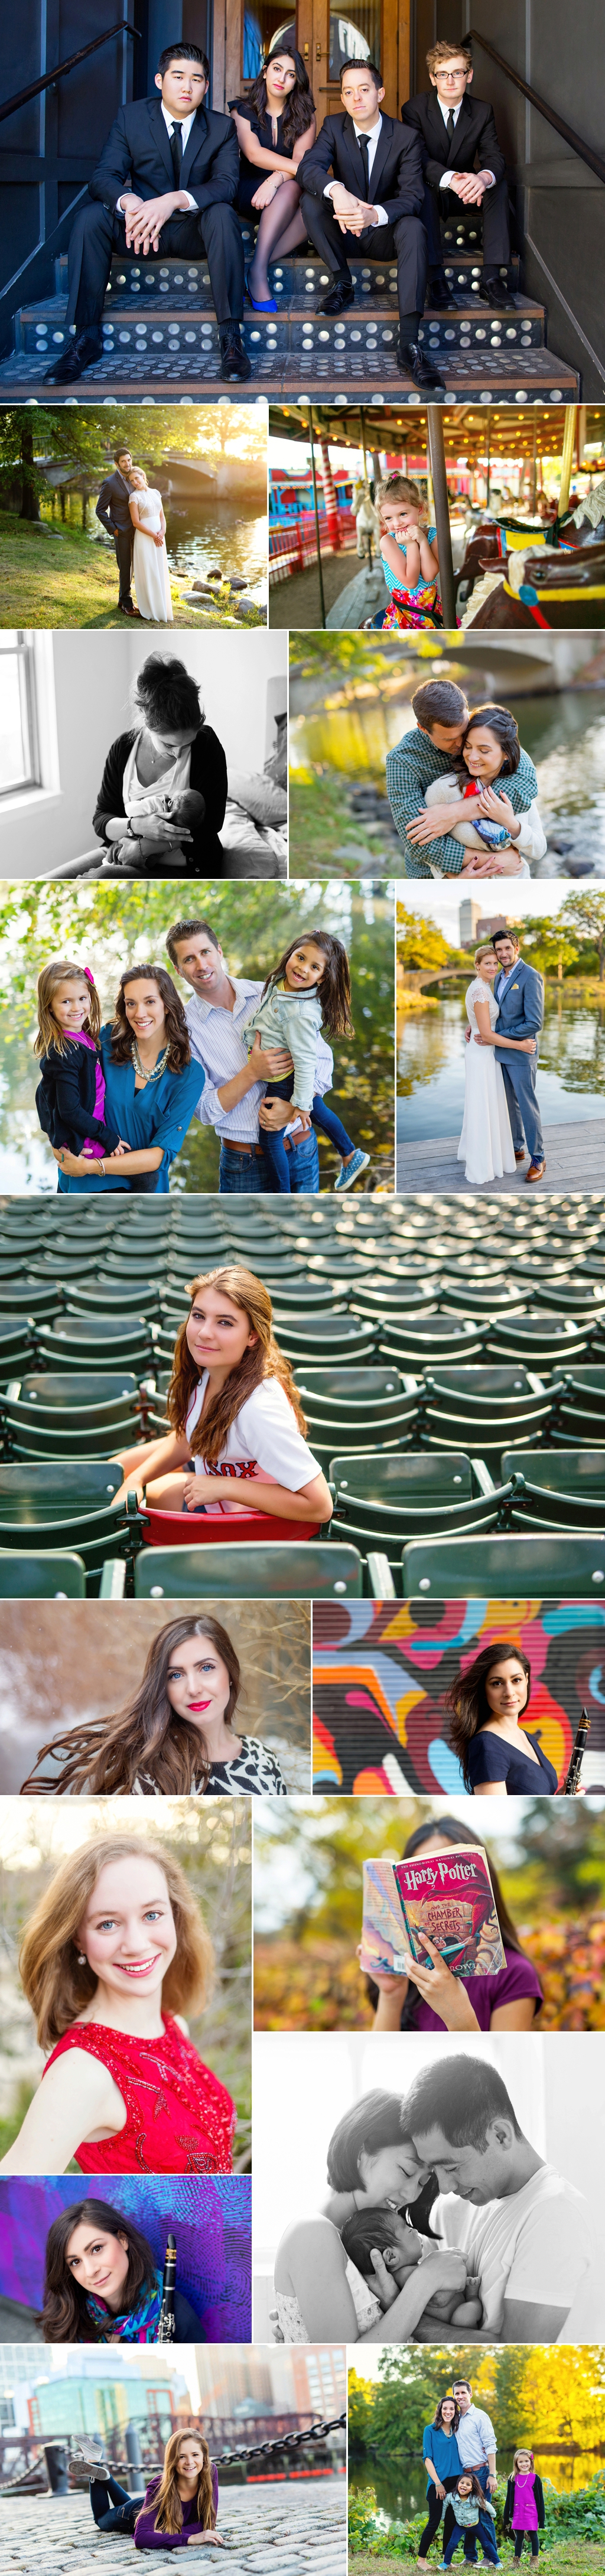 On location photography in Boston, including portraits at Fenway Park.